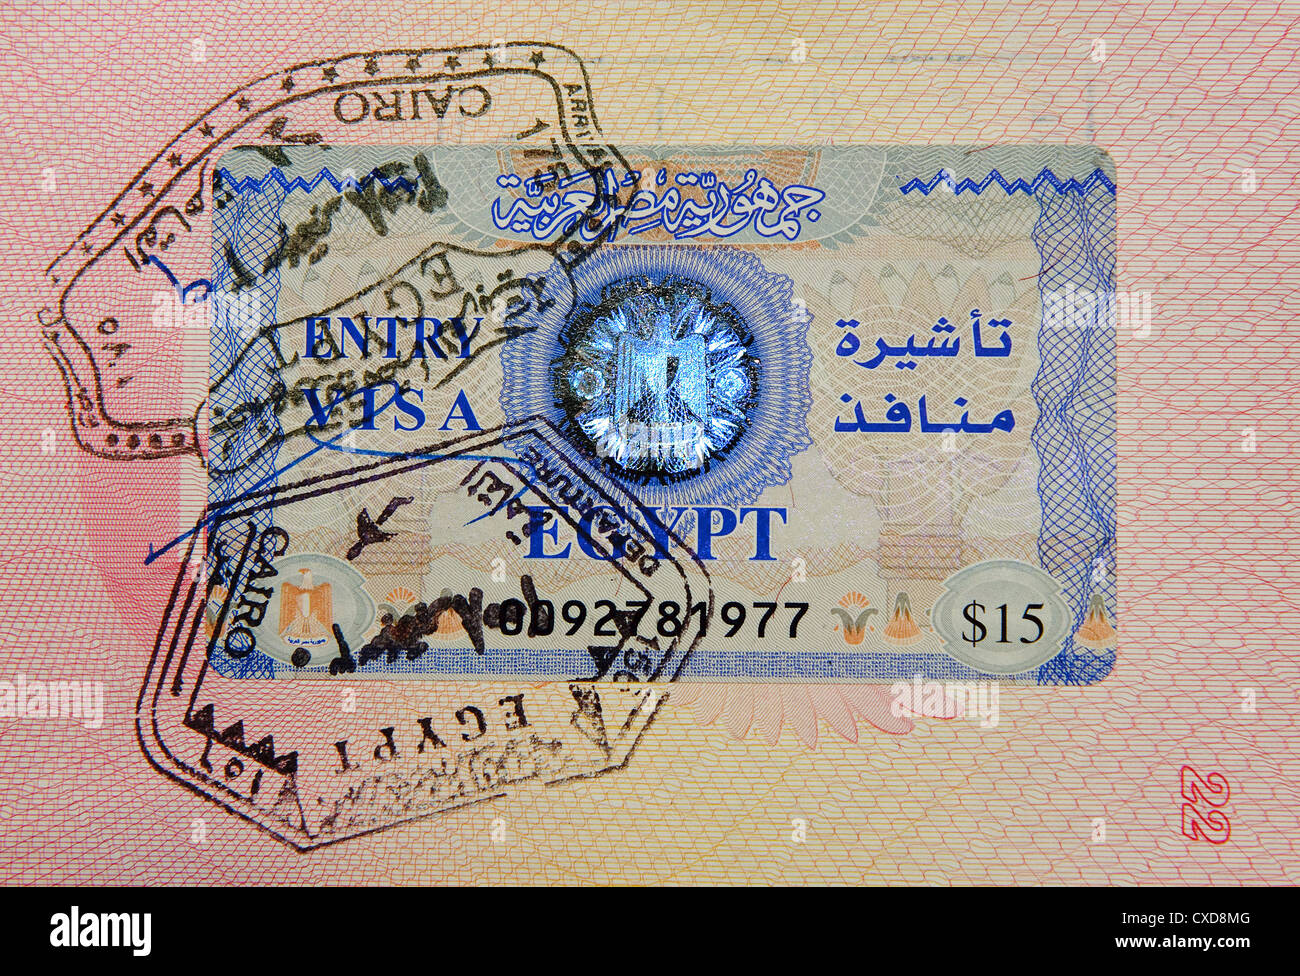 passport with egyptian visa and stamps - Stock Image